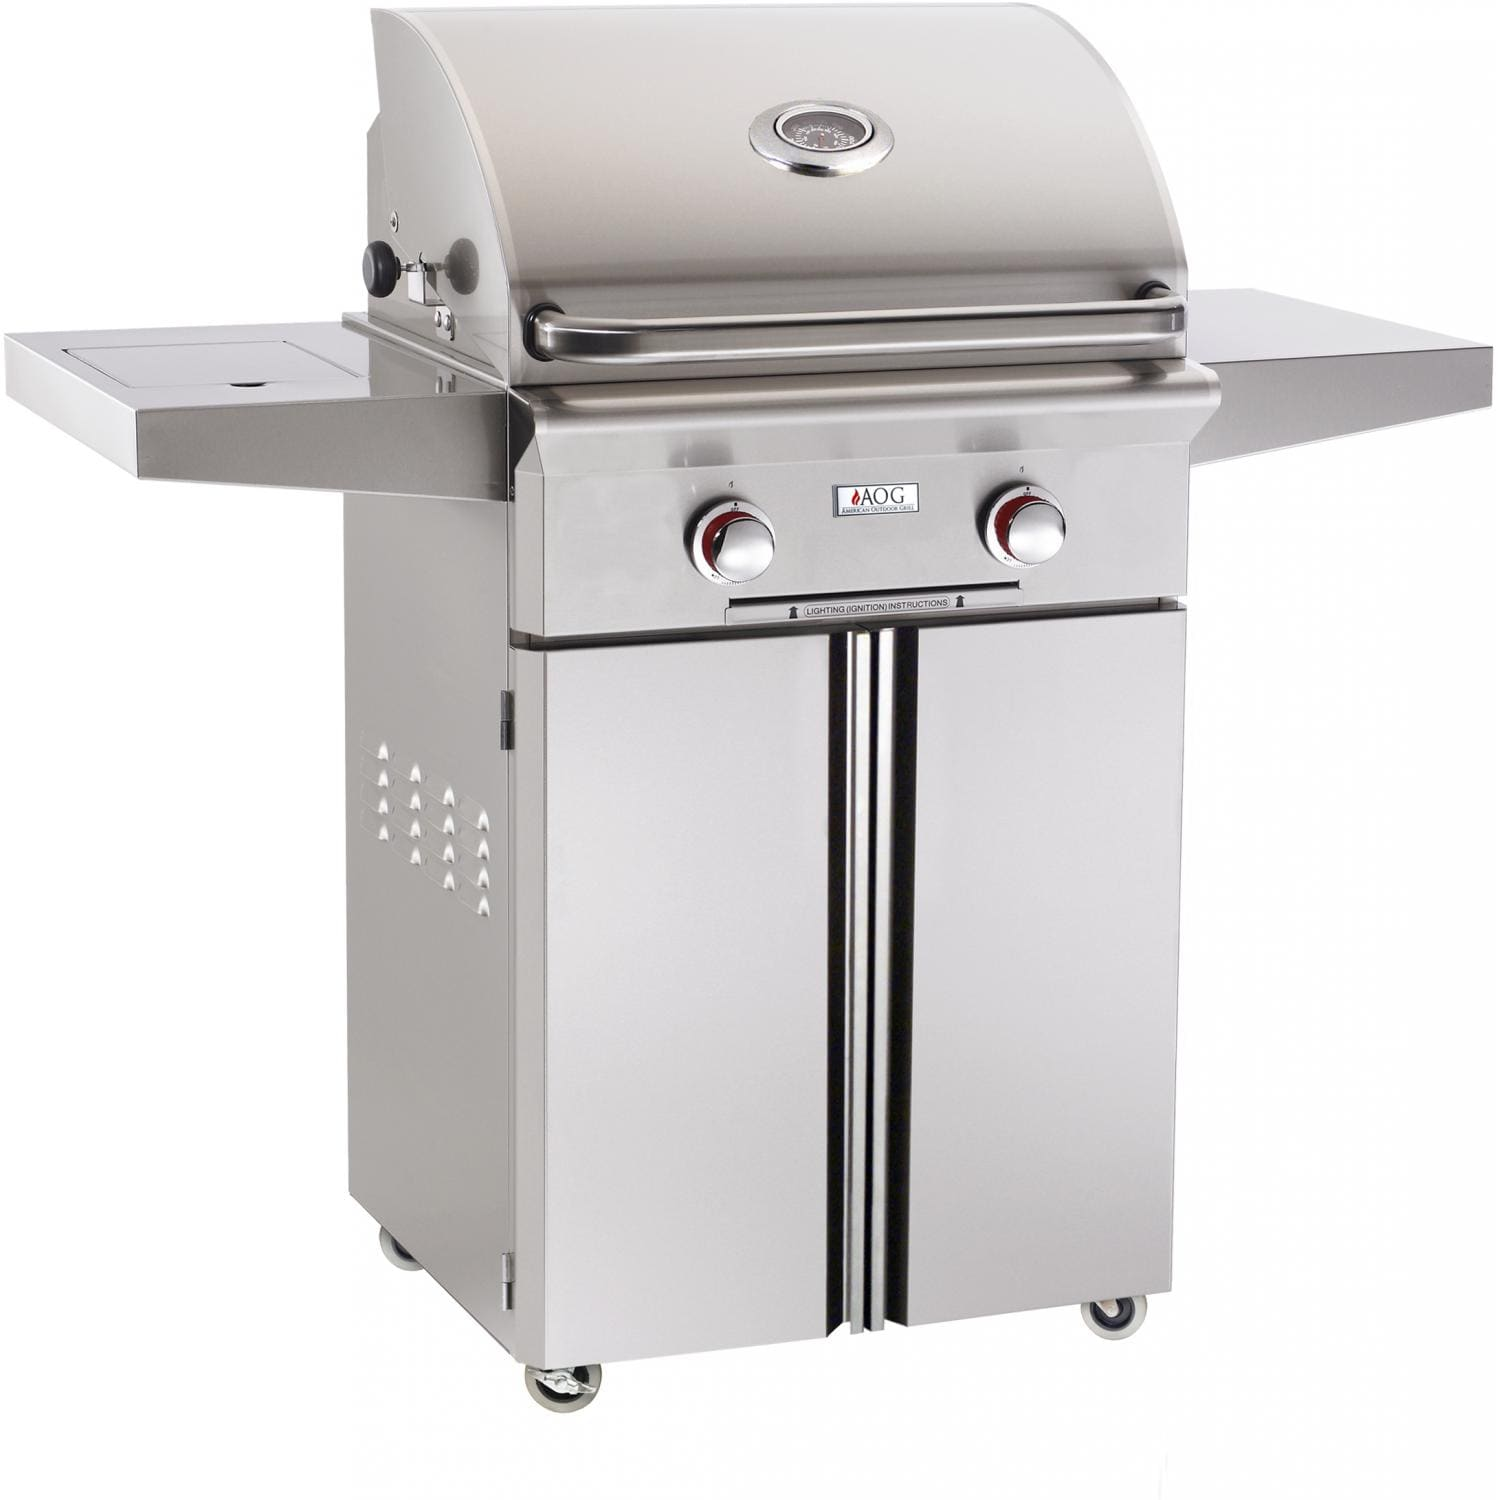 AOG  American Outdoor Grill T-Series 24 inch 2-Burner Natural Gas Grill - 24NCT-00SP